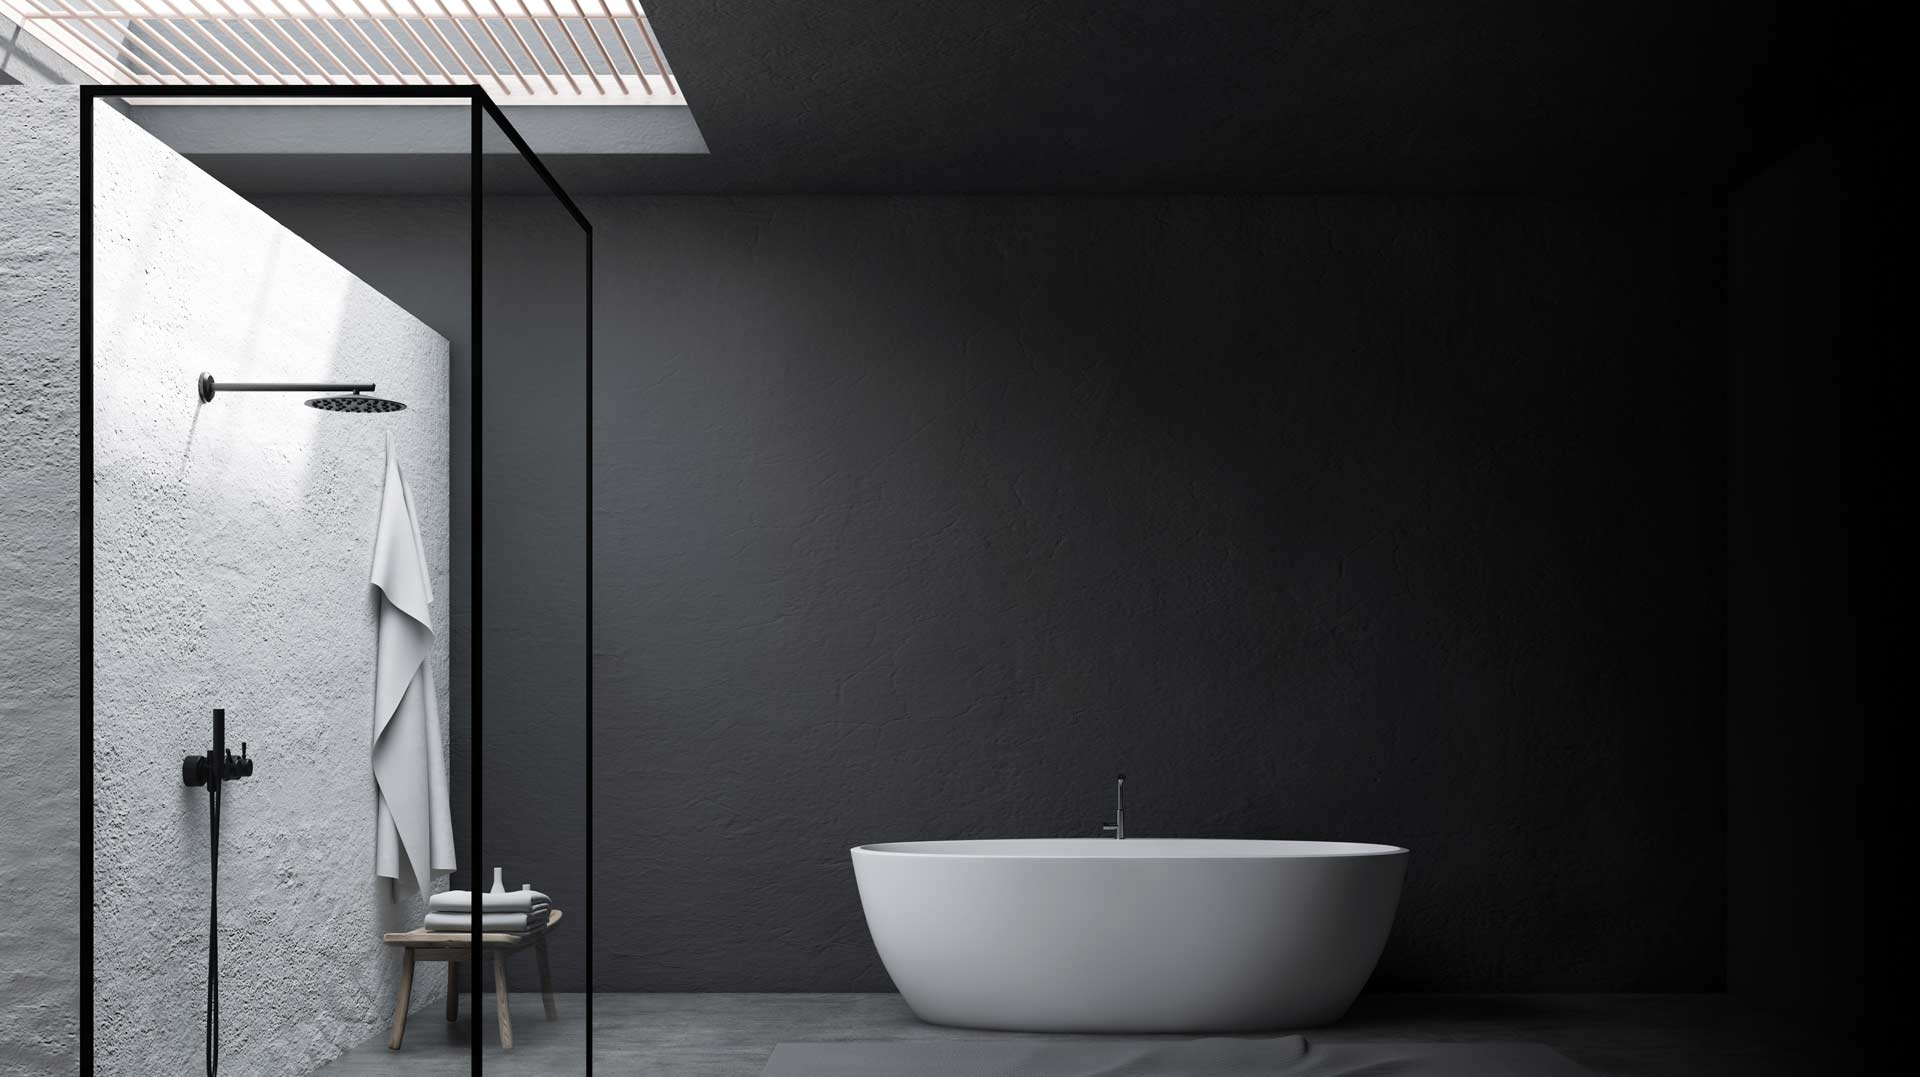 SPECIALISTS IN SHOWER SCREENS